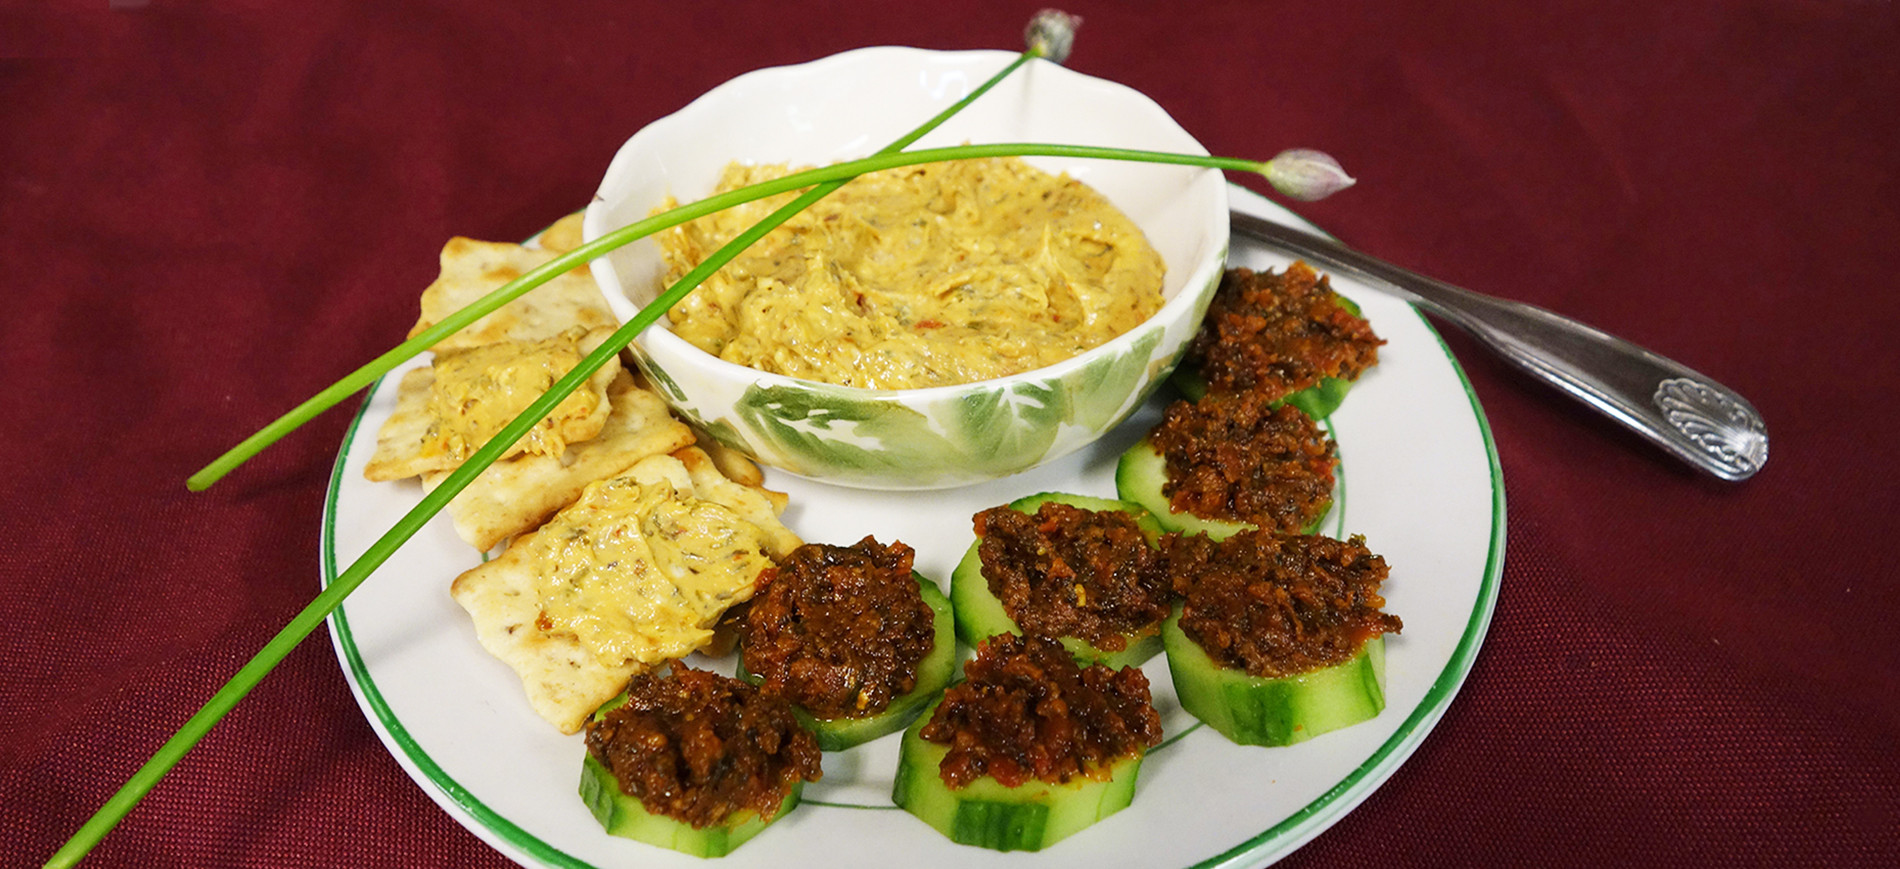 Sun dried tomato pesto on cucumber rounds, pesto dip in bowl and on crackers